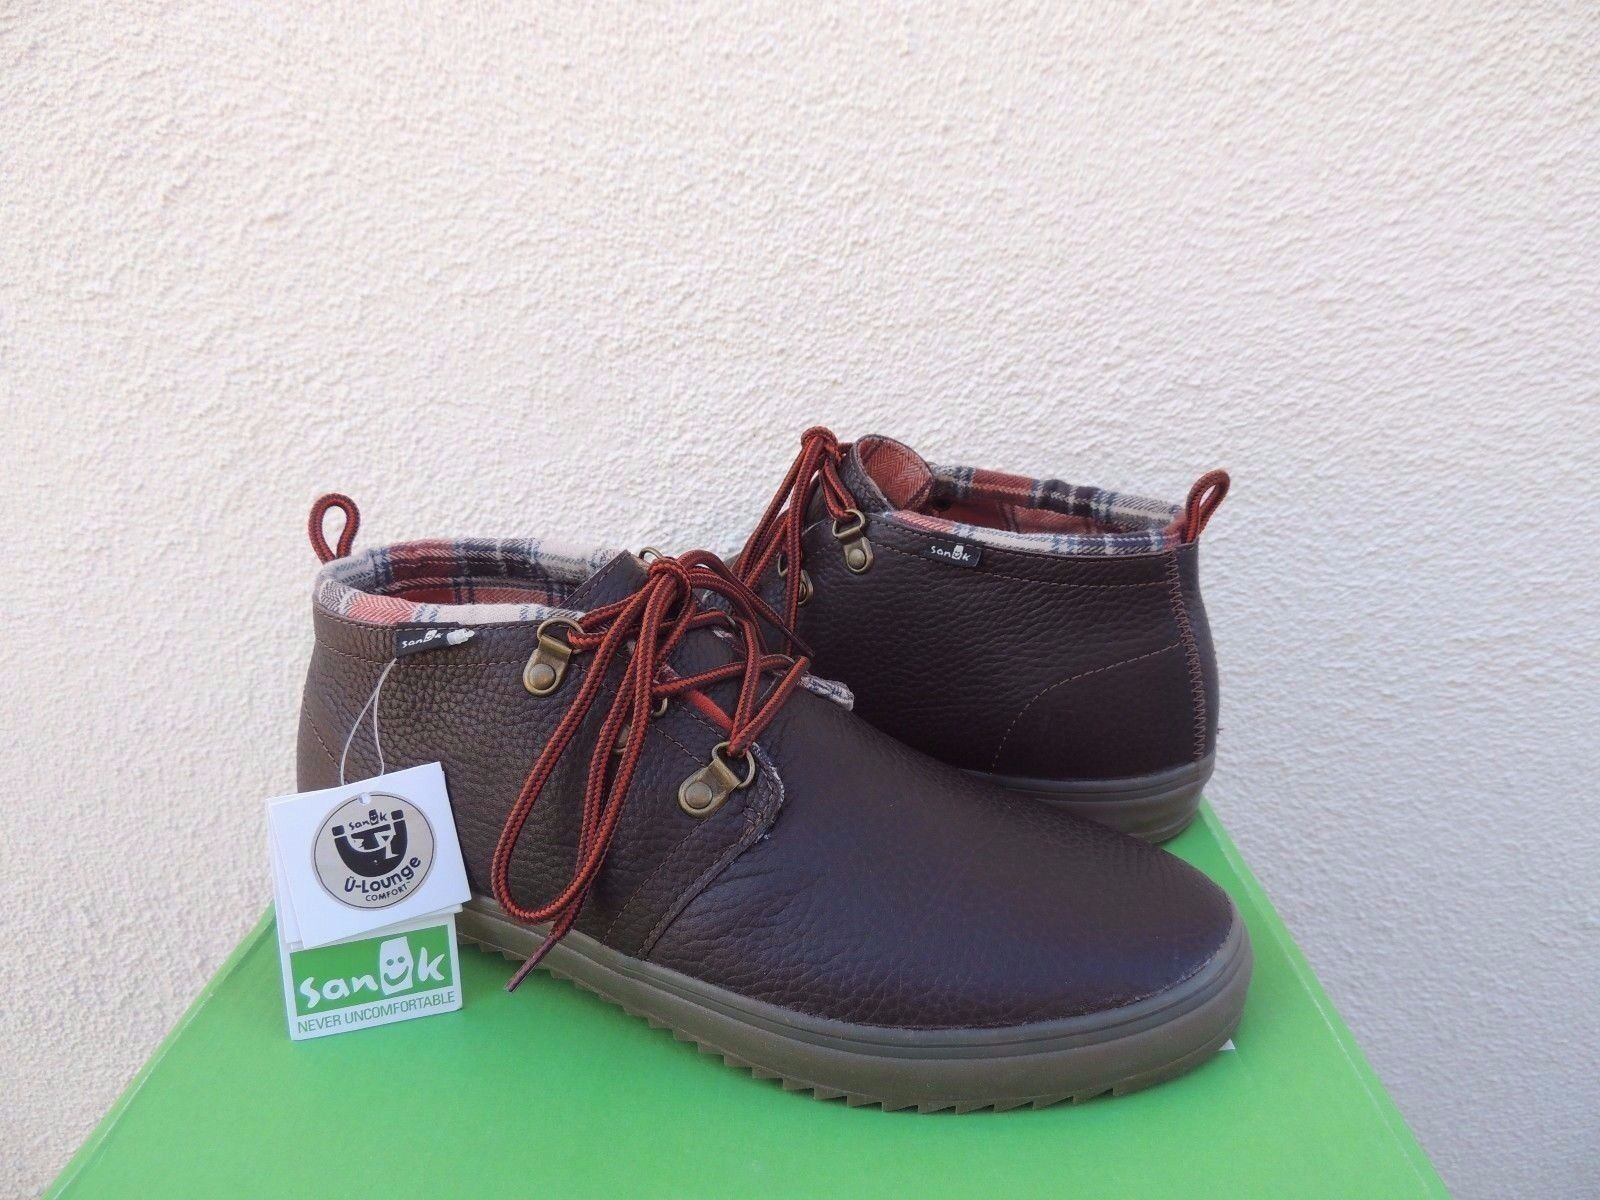 SANUK CARGO DELUXE BROWN LEATHER CHUKKA ANKLE BOOTS, US 9/ ~NWT